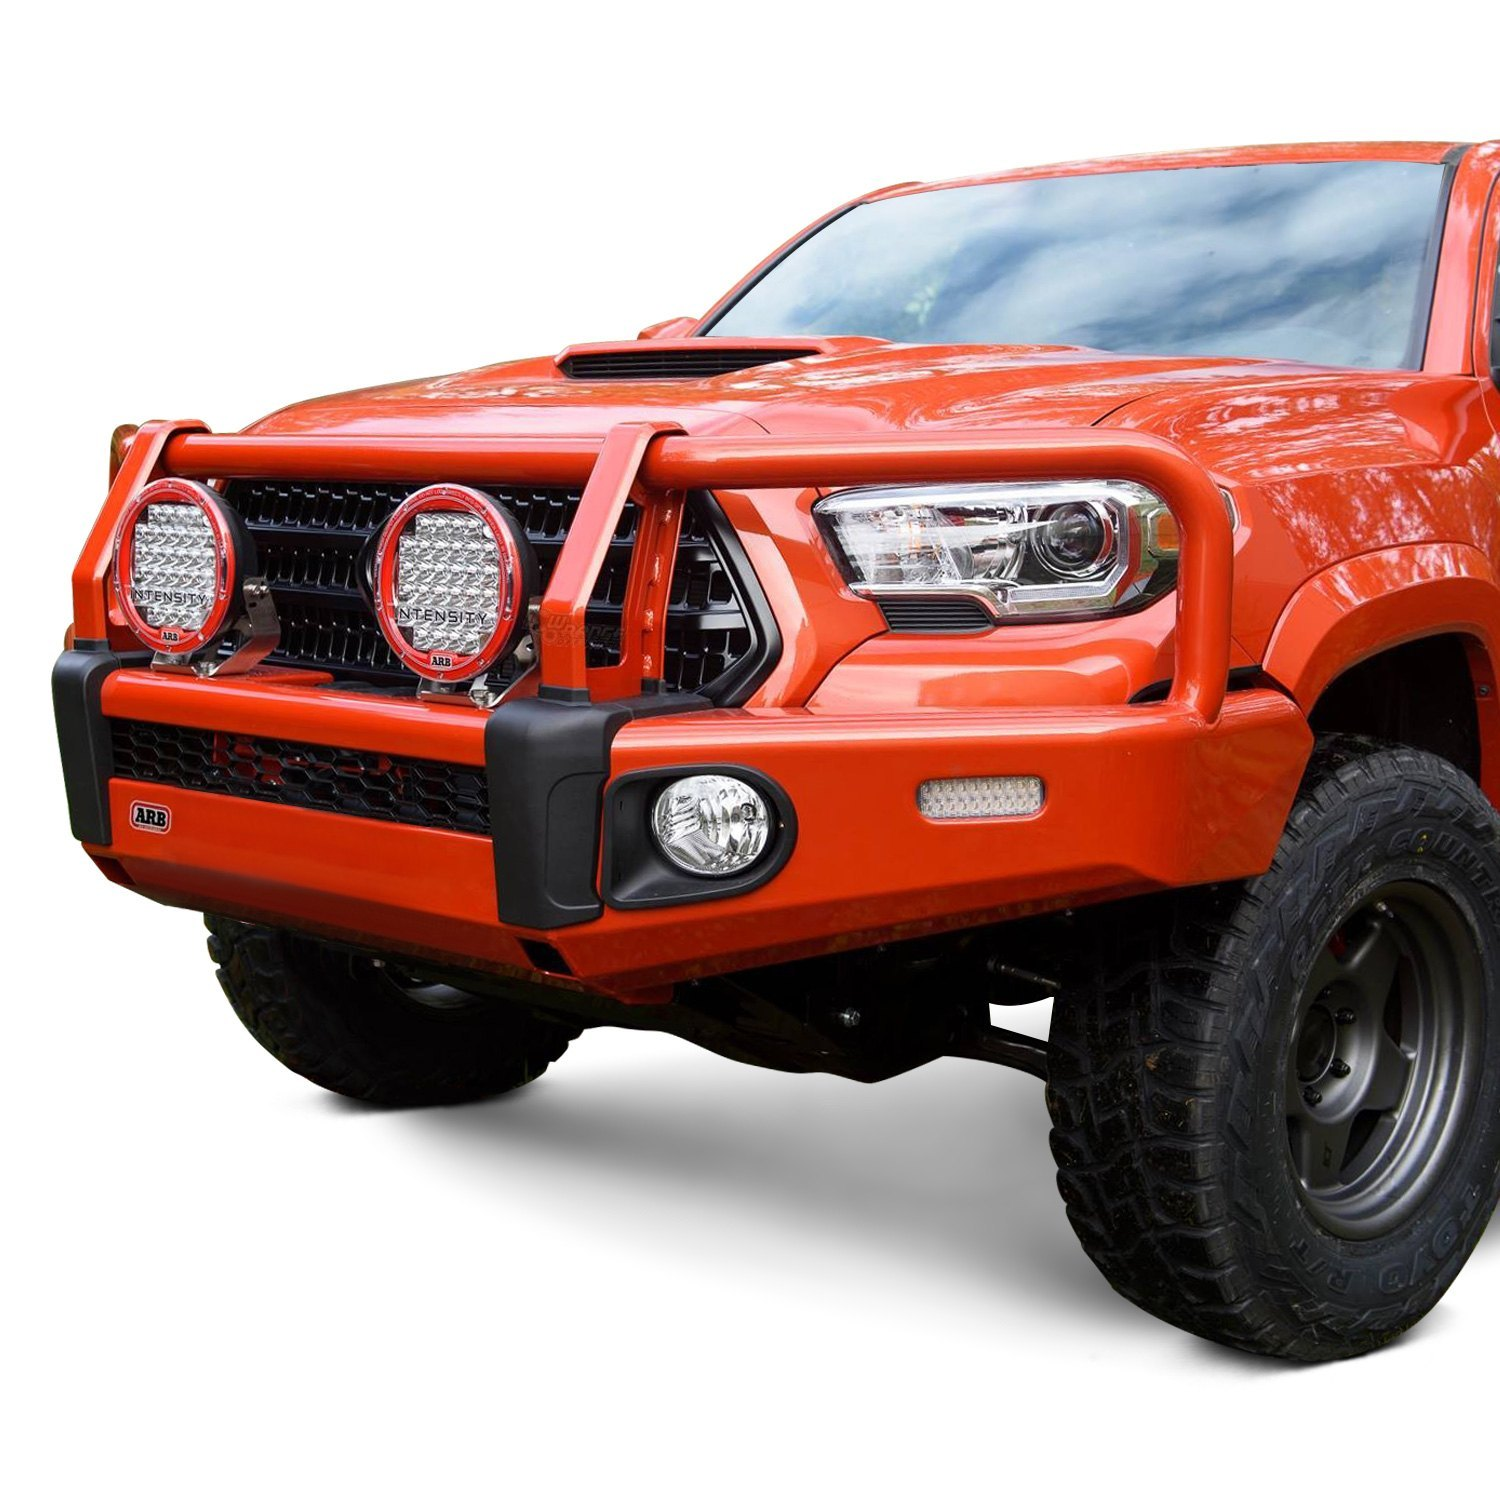 arb toyota tacoma 2016 2017 summit full width front winch hd bumper with grille guard. Black Bedroom Furniture Sets. Home Design Ideas